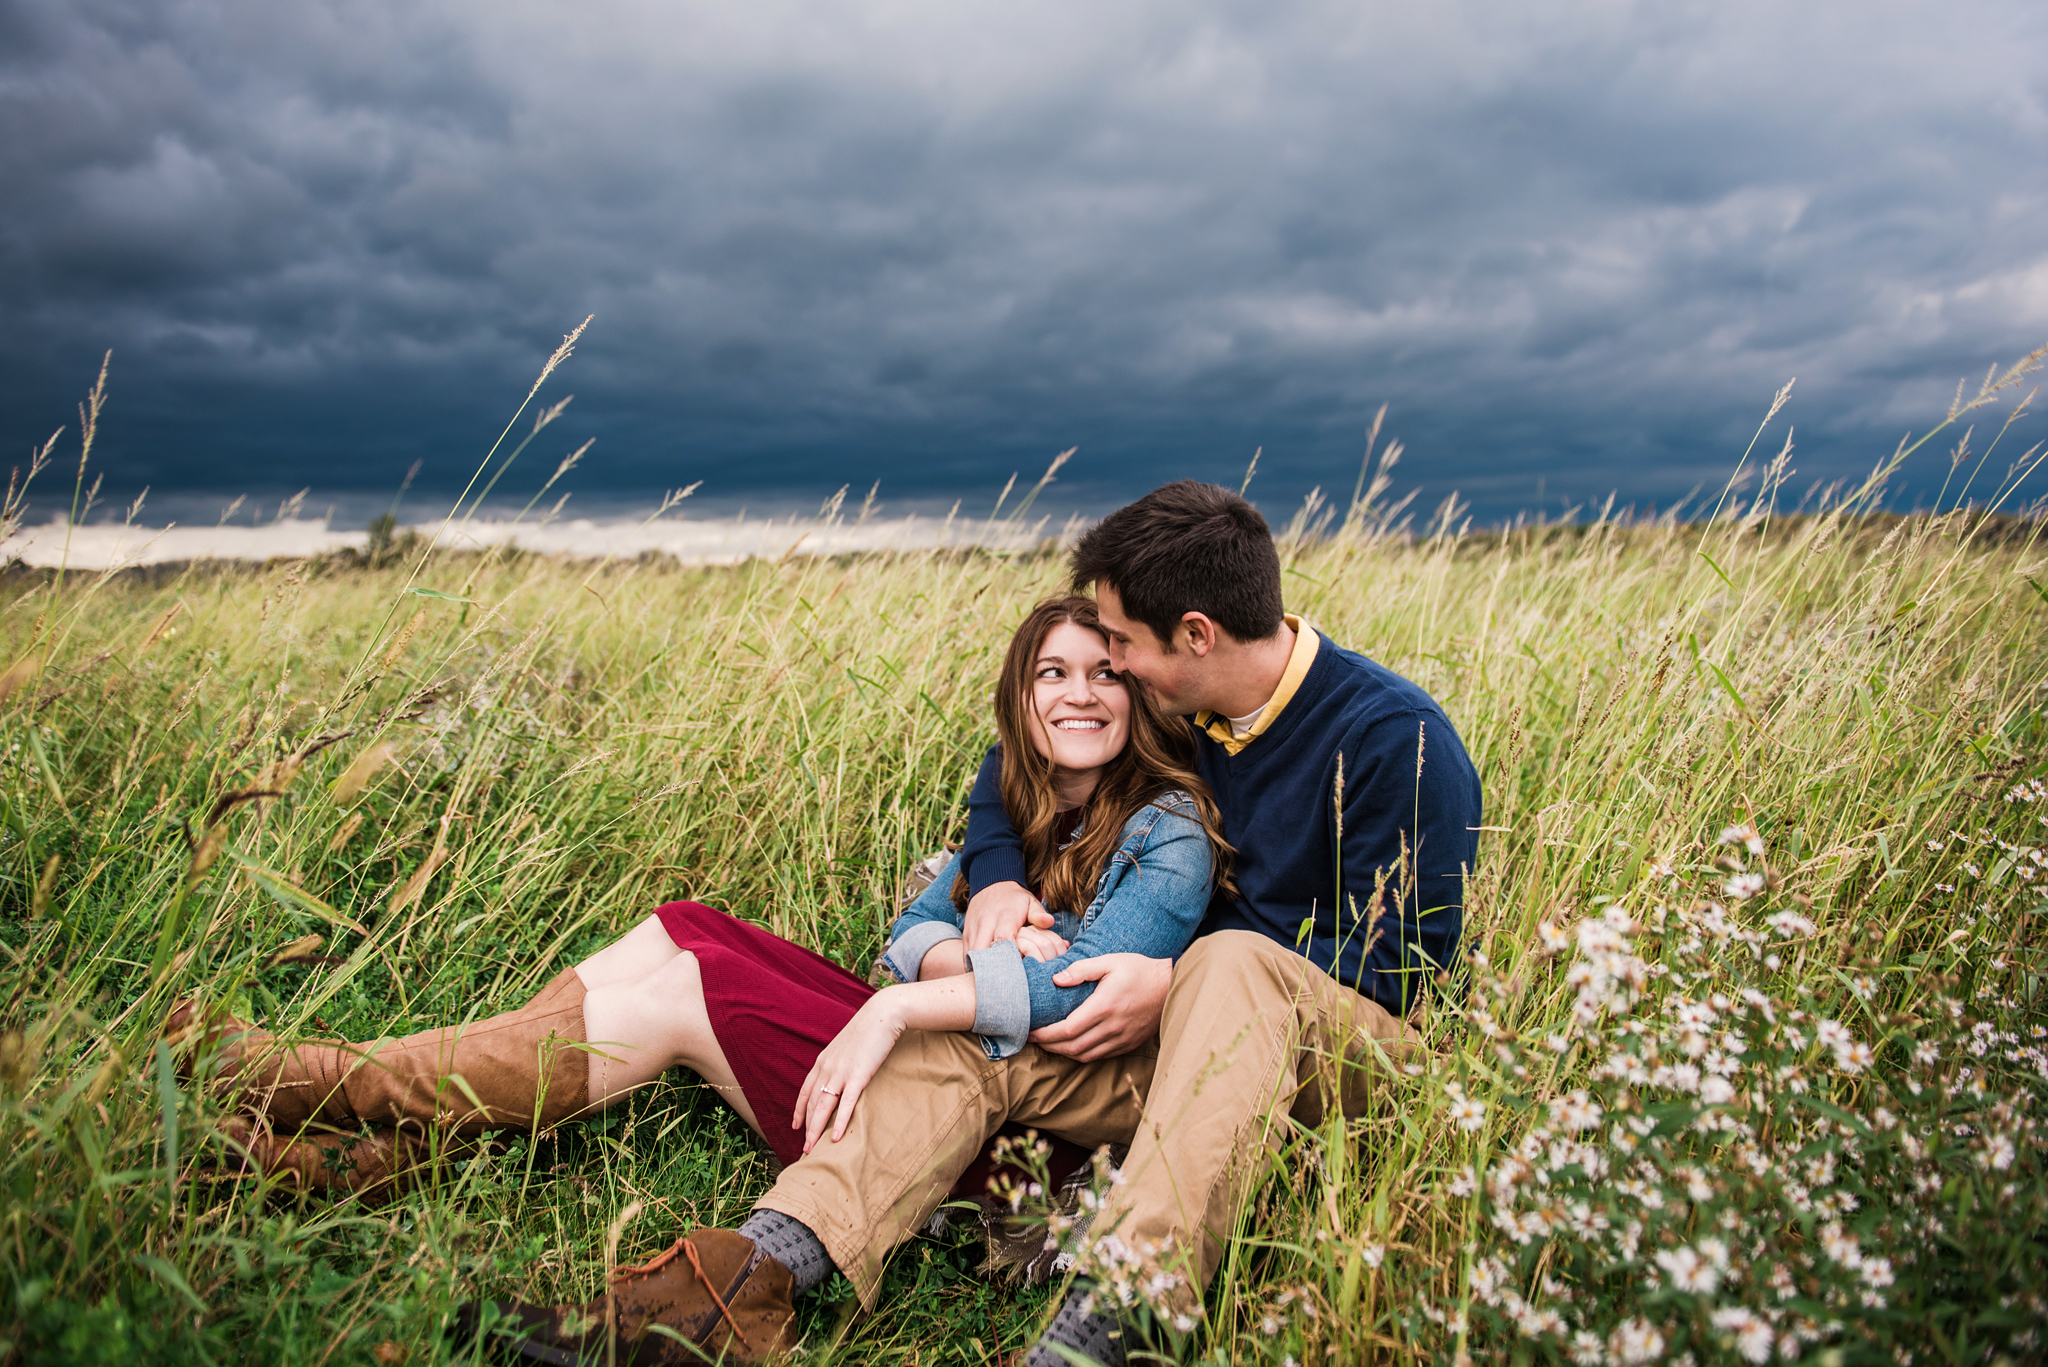 Becker_Farms_Buffalo_Engagement_Session_JILL_STUDIO_Rochester_NY_Photographer_DSC_4769.jpg